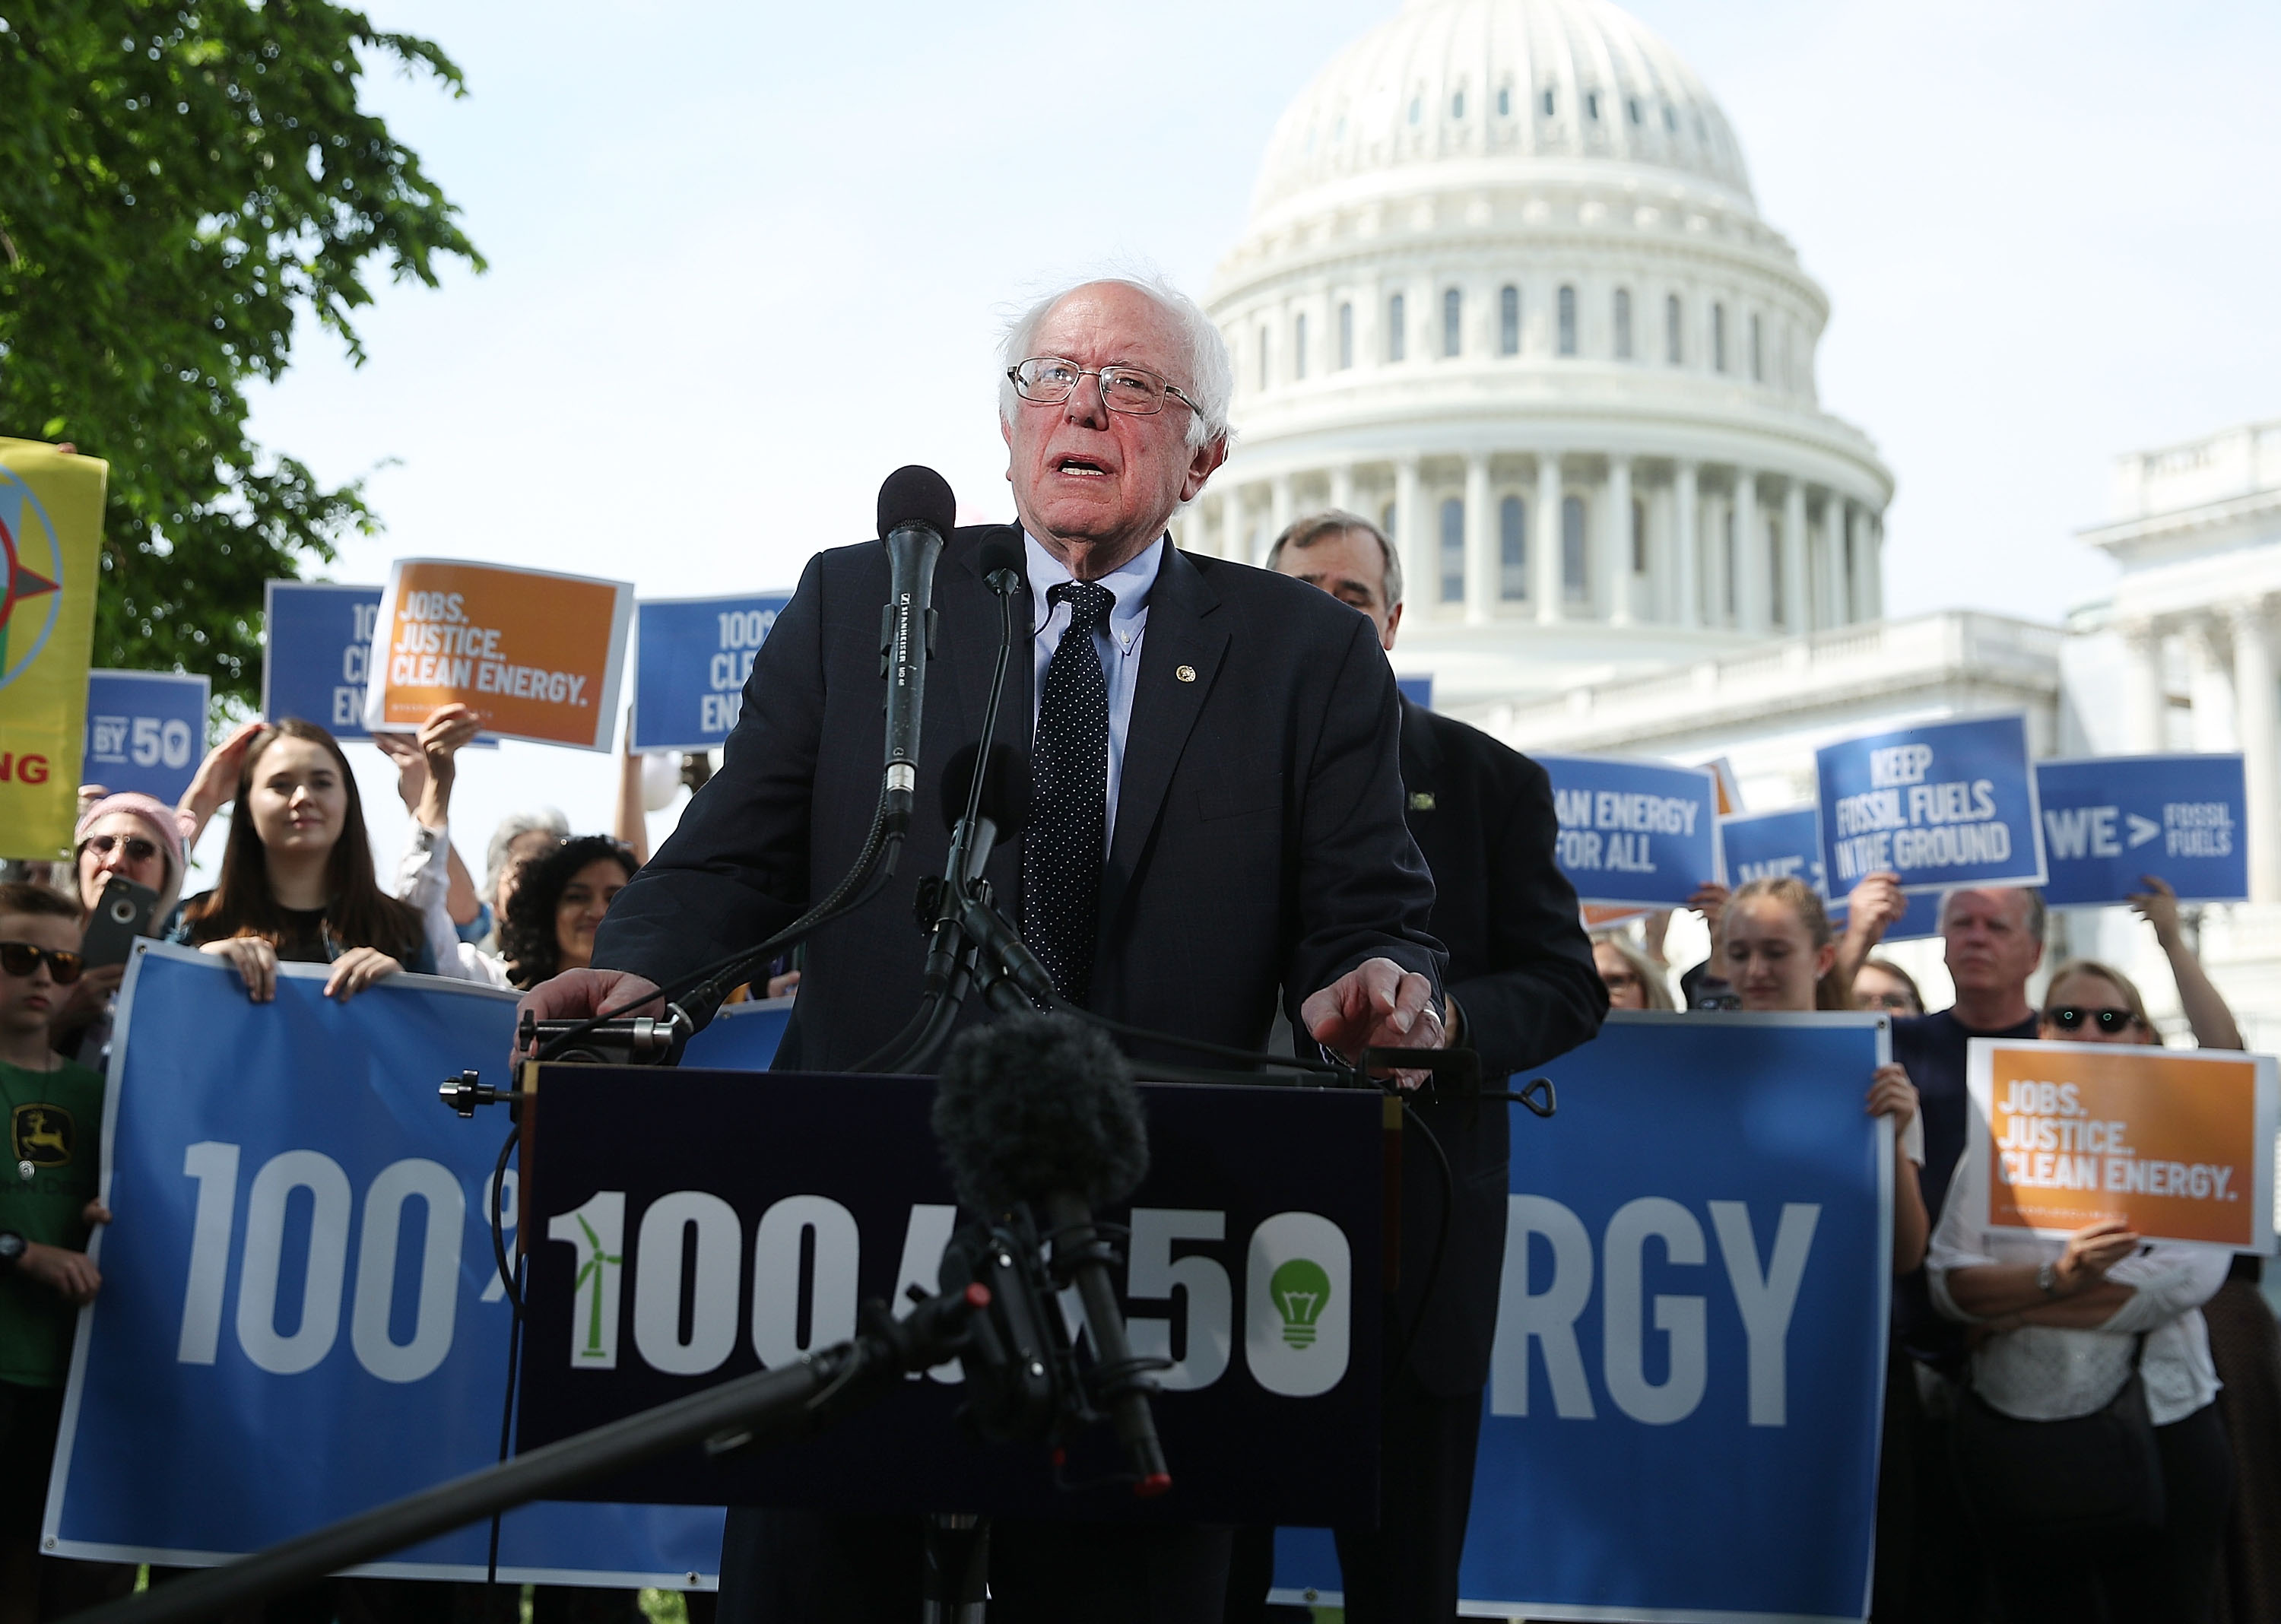 Bernie Sanders has a $16 trillion plan to avert climate disasters